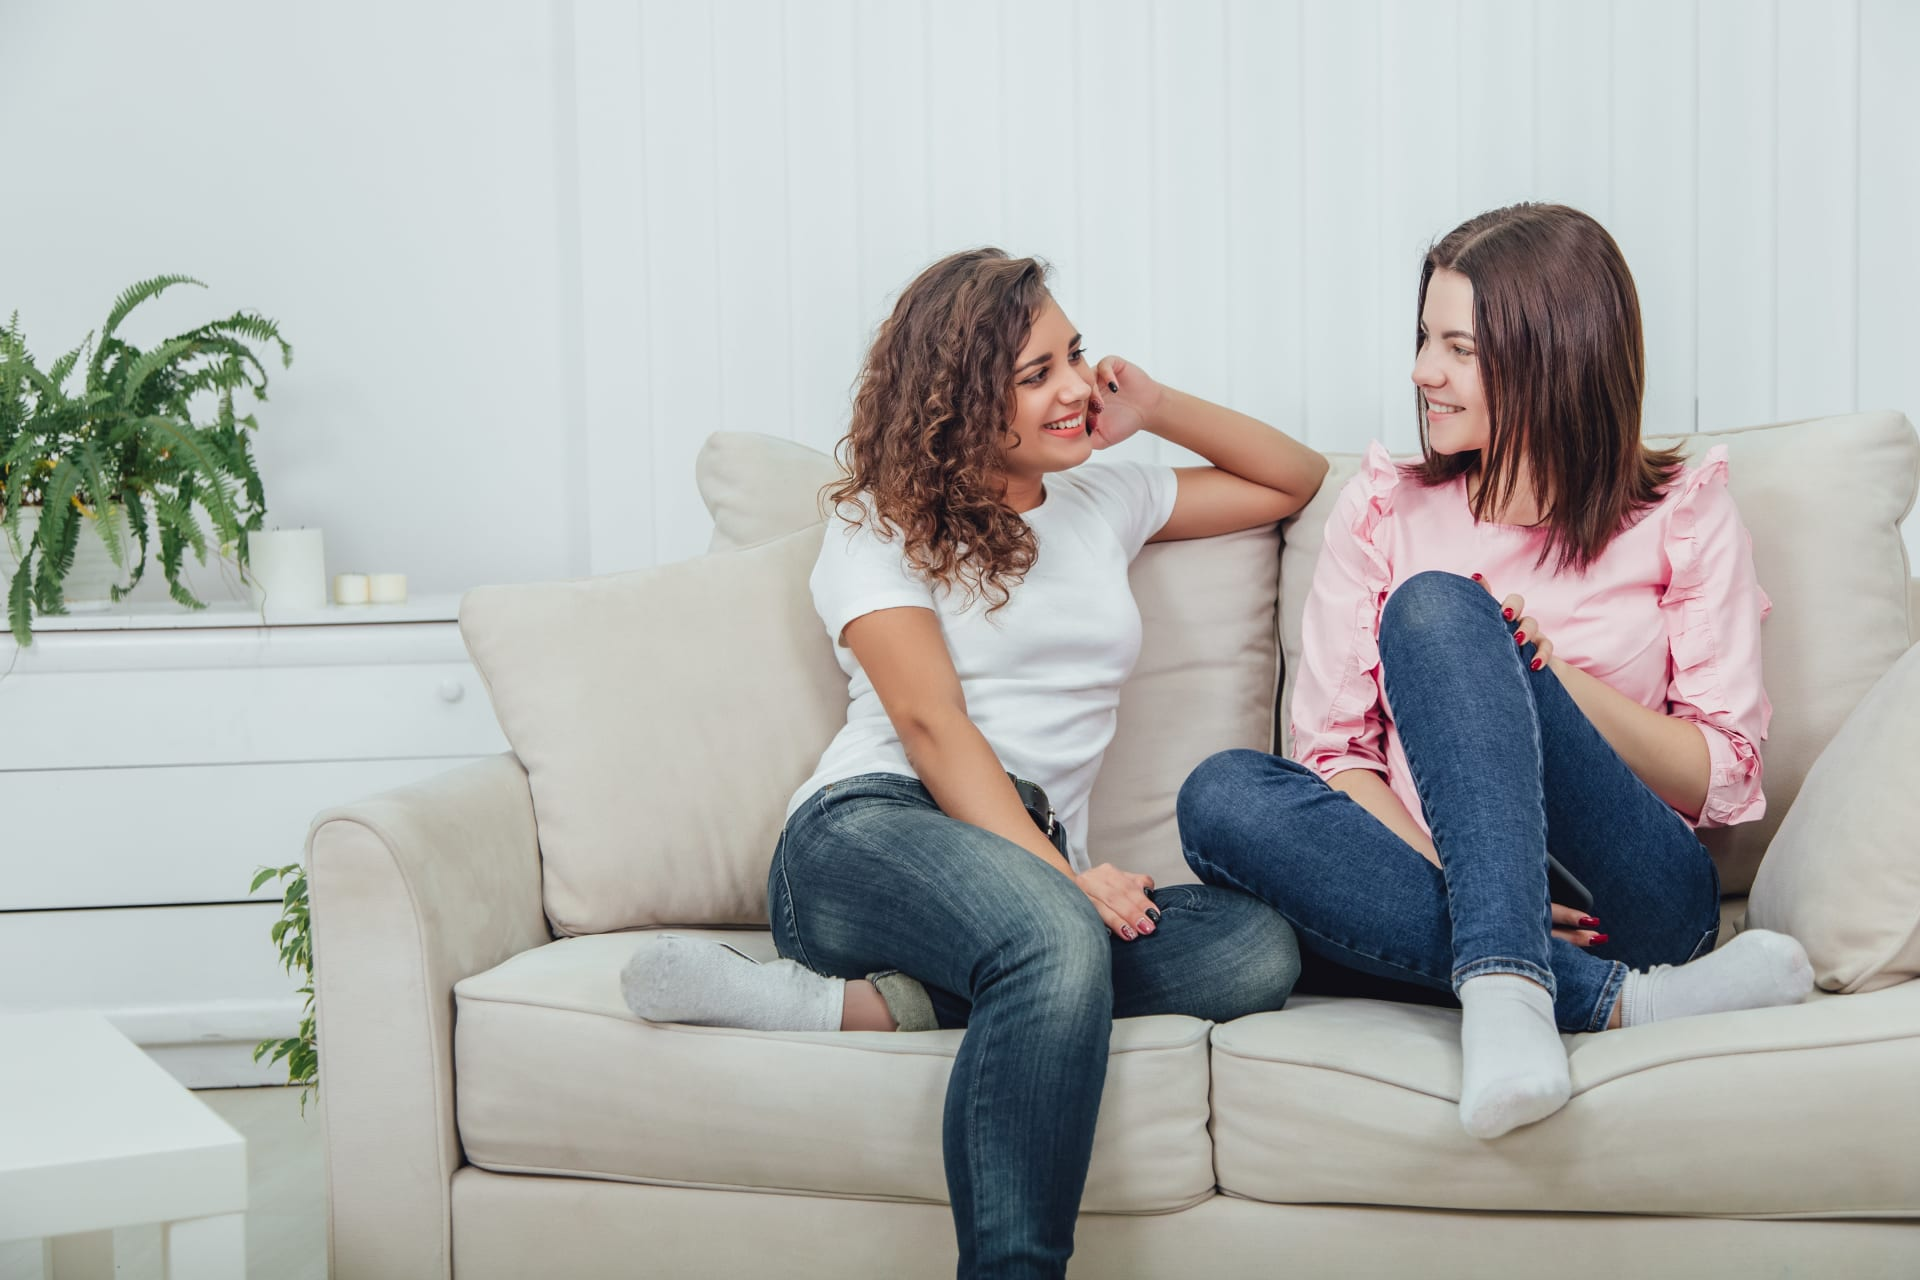 Two girls talking while sitting on a couch